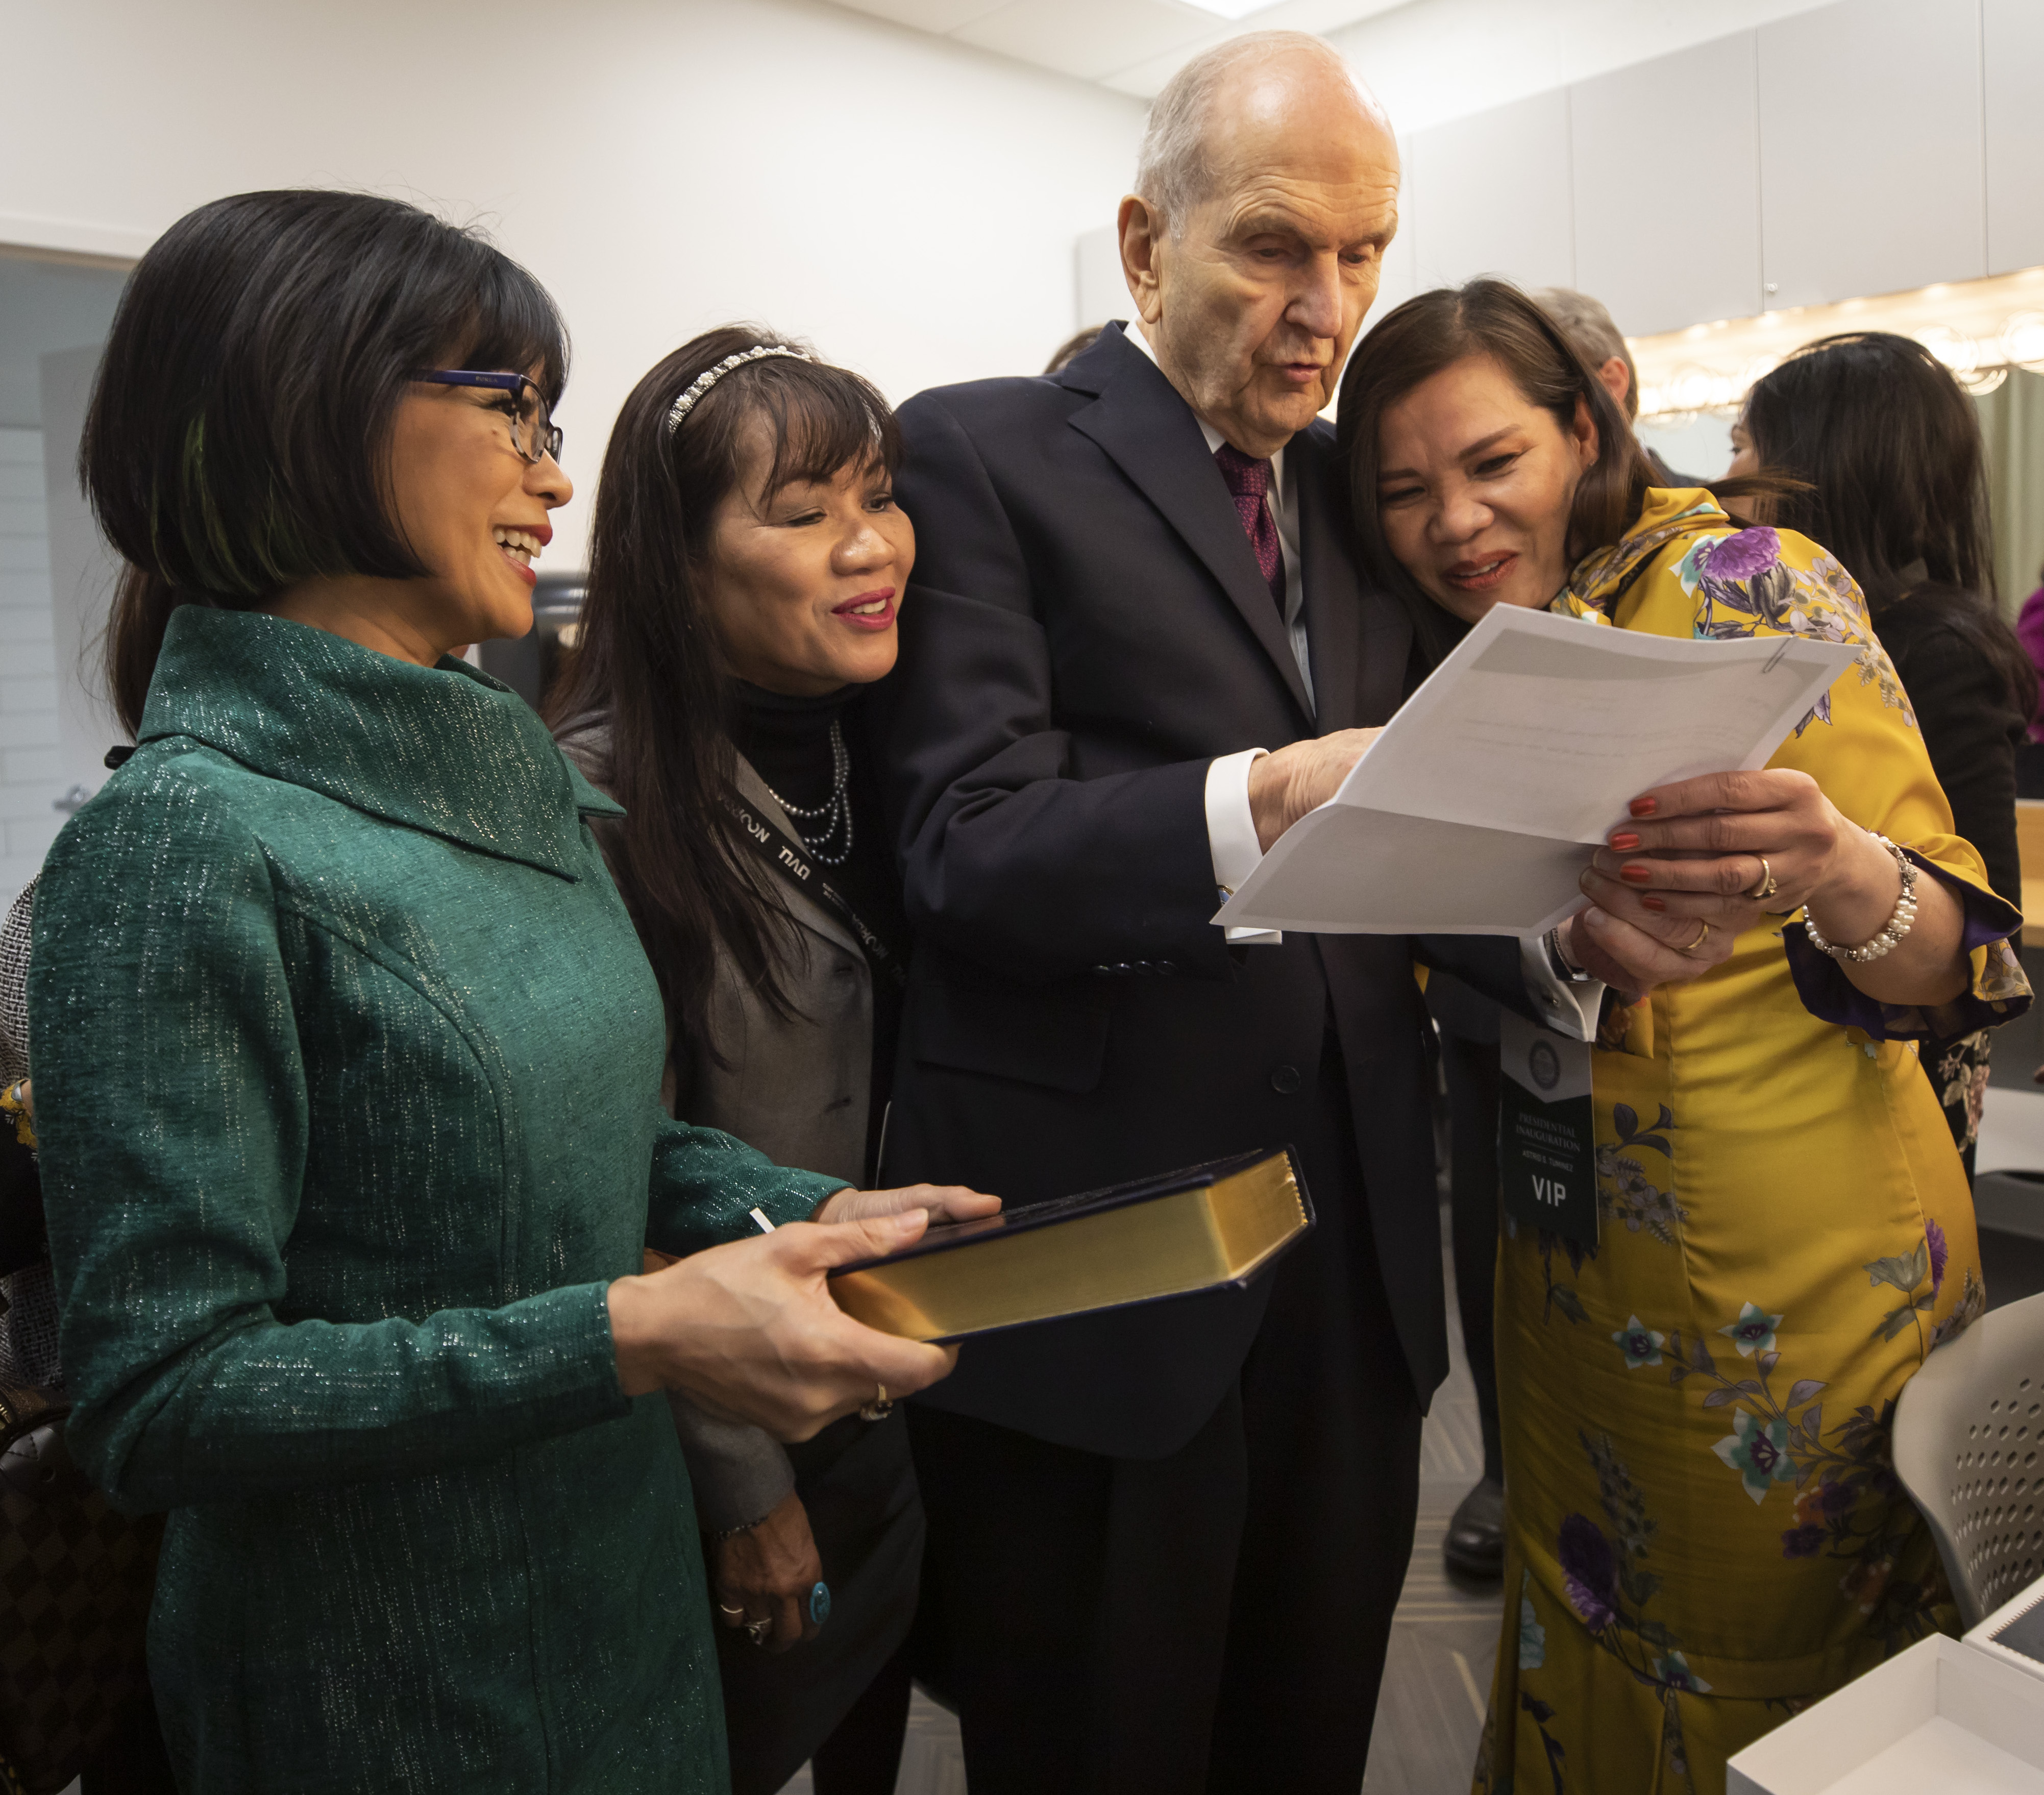 President Russell M. Nelson reviews over surgical documents with Nora Olson, sister of UVU President Astrid Tuminez. Decades ago, Dr. Russell M. Nelson performed heart surgery on Olson. At left are President Tuminez and her sister, Julie Ludlow. President Nelson met with the sisters at the Presidential Inauguration in the Concert Hall of the Noorda Center for the Performing Arts, on the Campus of Utah Valley University in Orem, Utah Wednesday, March 27, 2019.